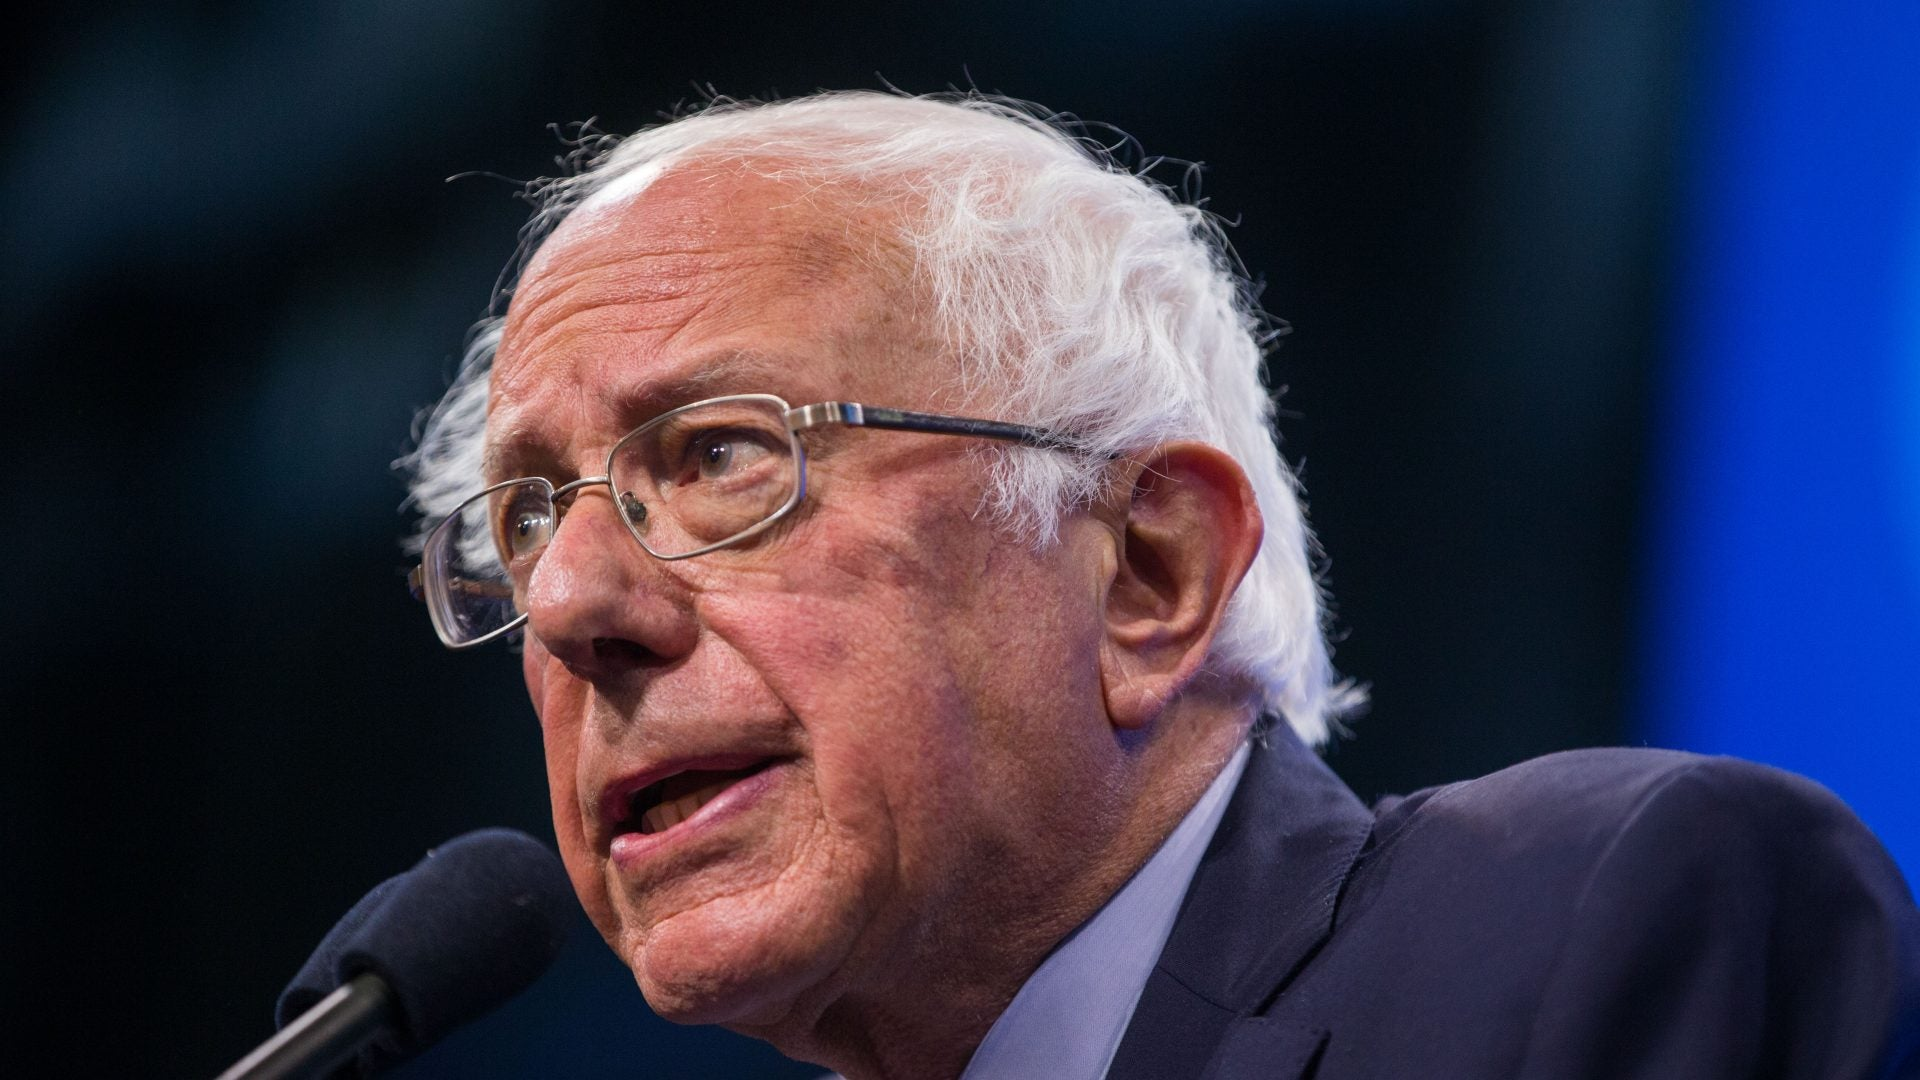 Sanders Campaign Says He Will Participate In April Debate